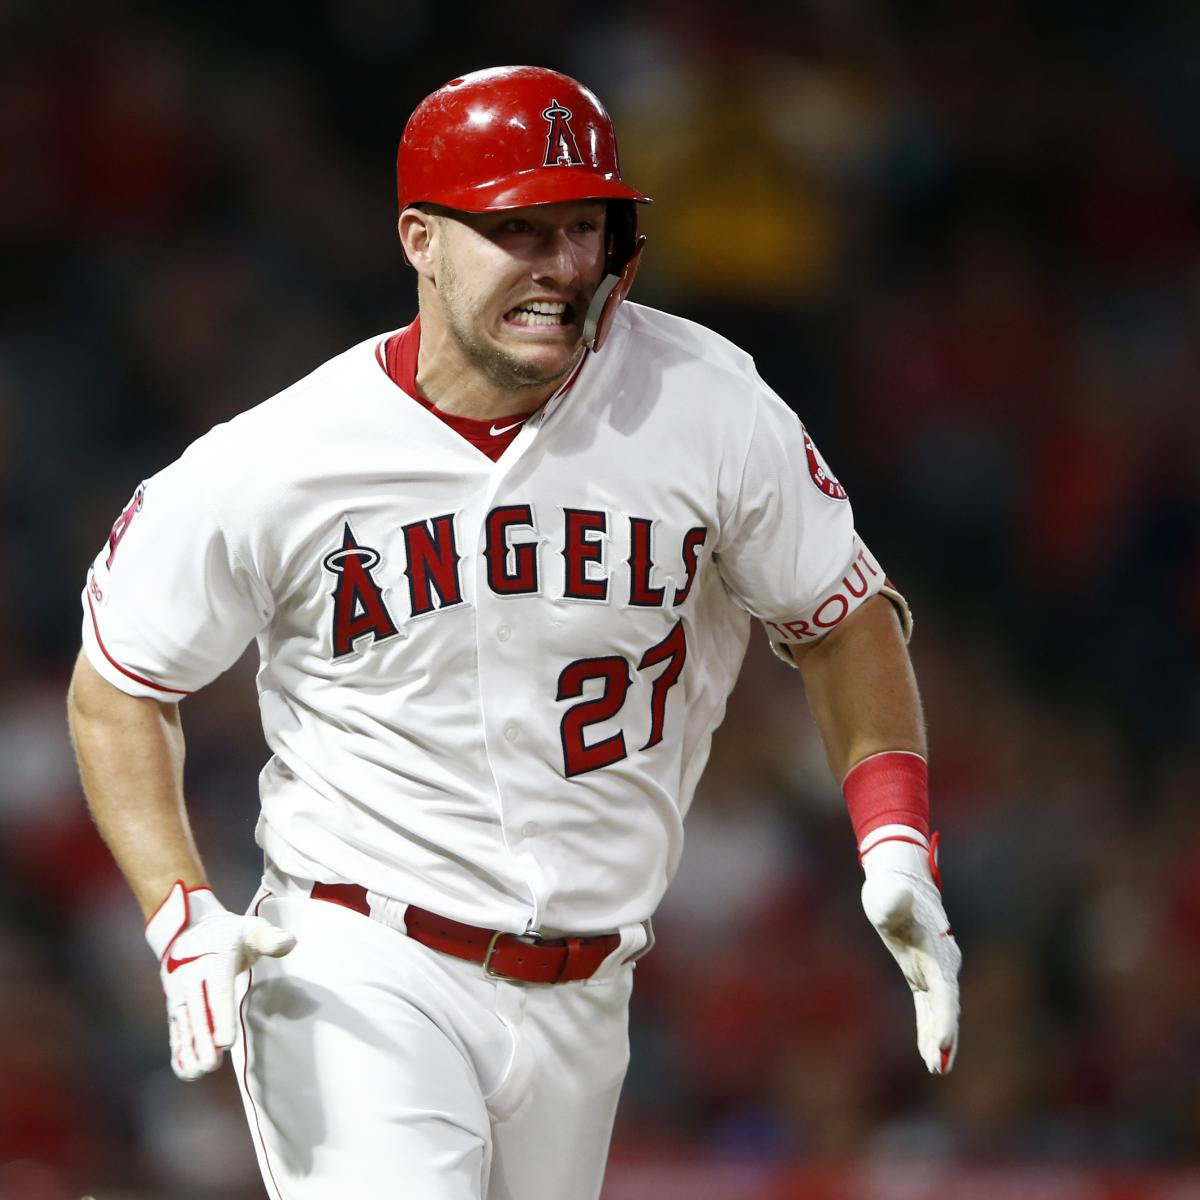 """Los Angeles Angels outfielder Mike Trout remains sidelined by a right groin strain. The Angels announced Friday that tests showed a """"reduced amount of swelling,"""" and Trout will be reevaluated Sunday..."""